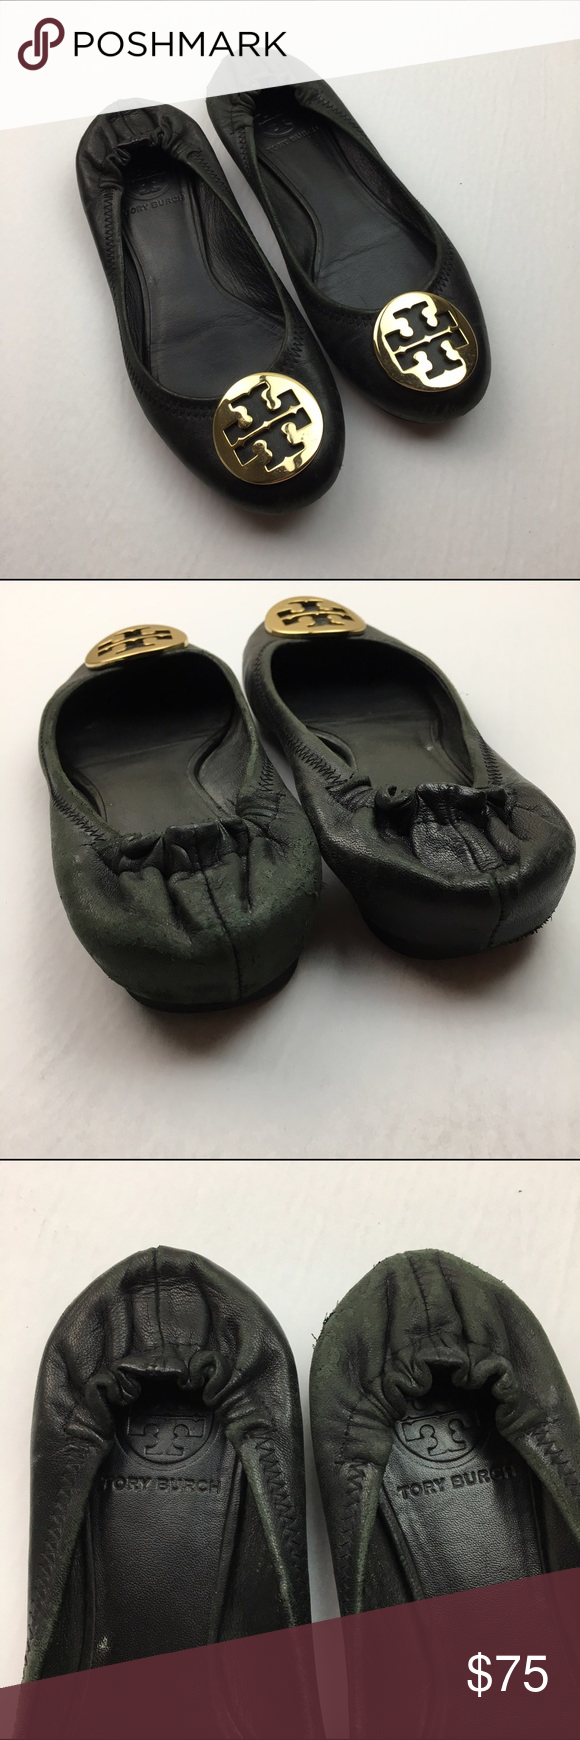 Tory Burch Authentic Black Leather Reva Flats The heels and toes of these are quite worn, but the body of the shoes still look fine. Please see photos for details. Tory Burch Shoes